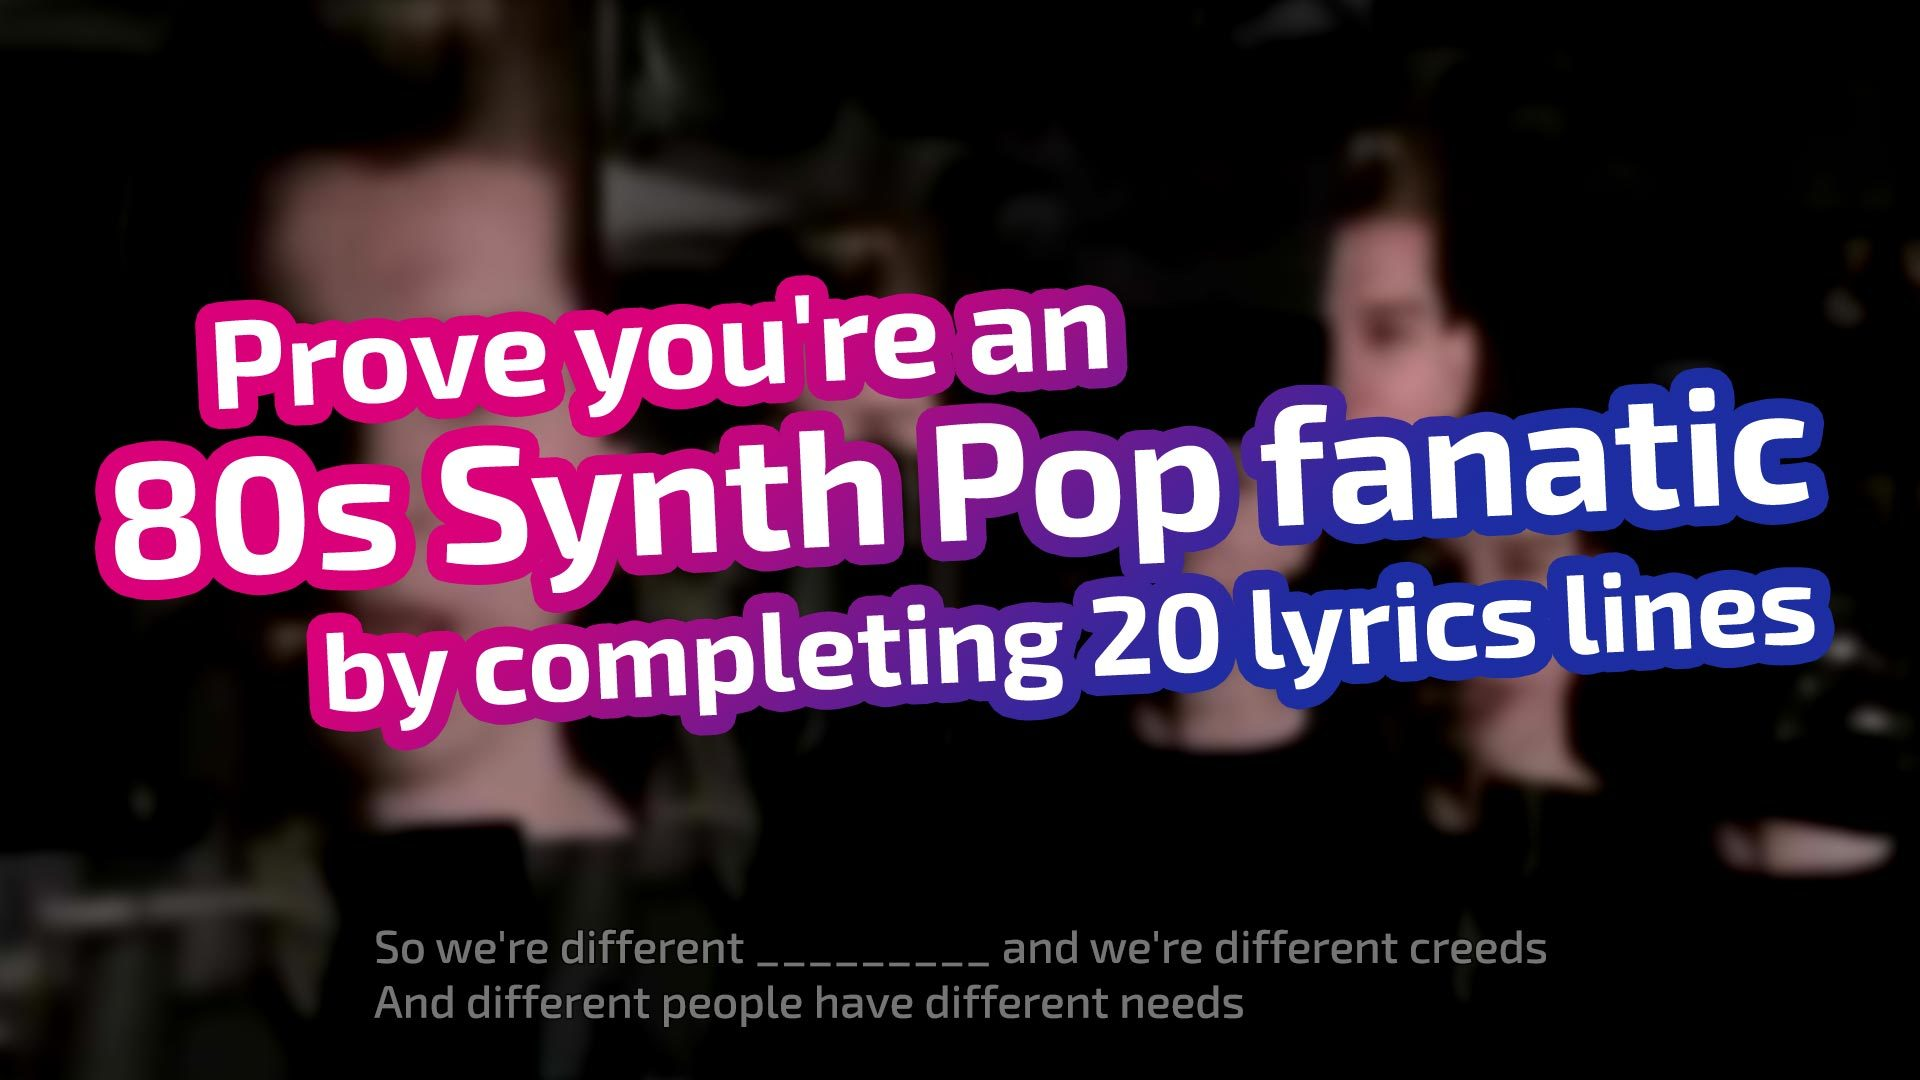 Prove you're an 80s Synth Pop fanatic by completing 20 lyrics lines